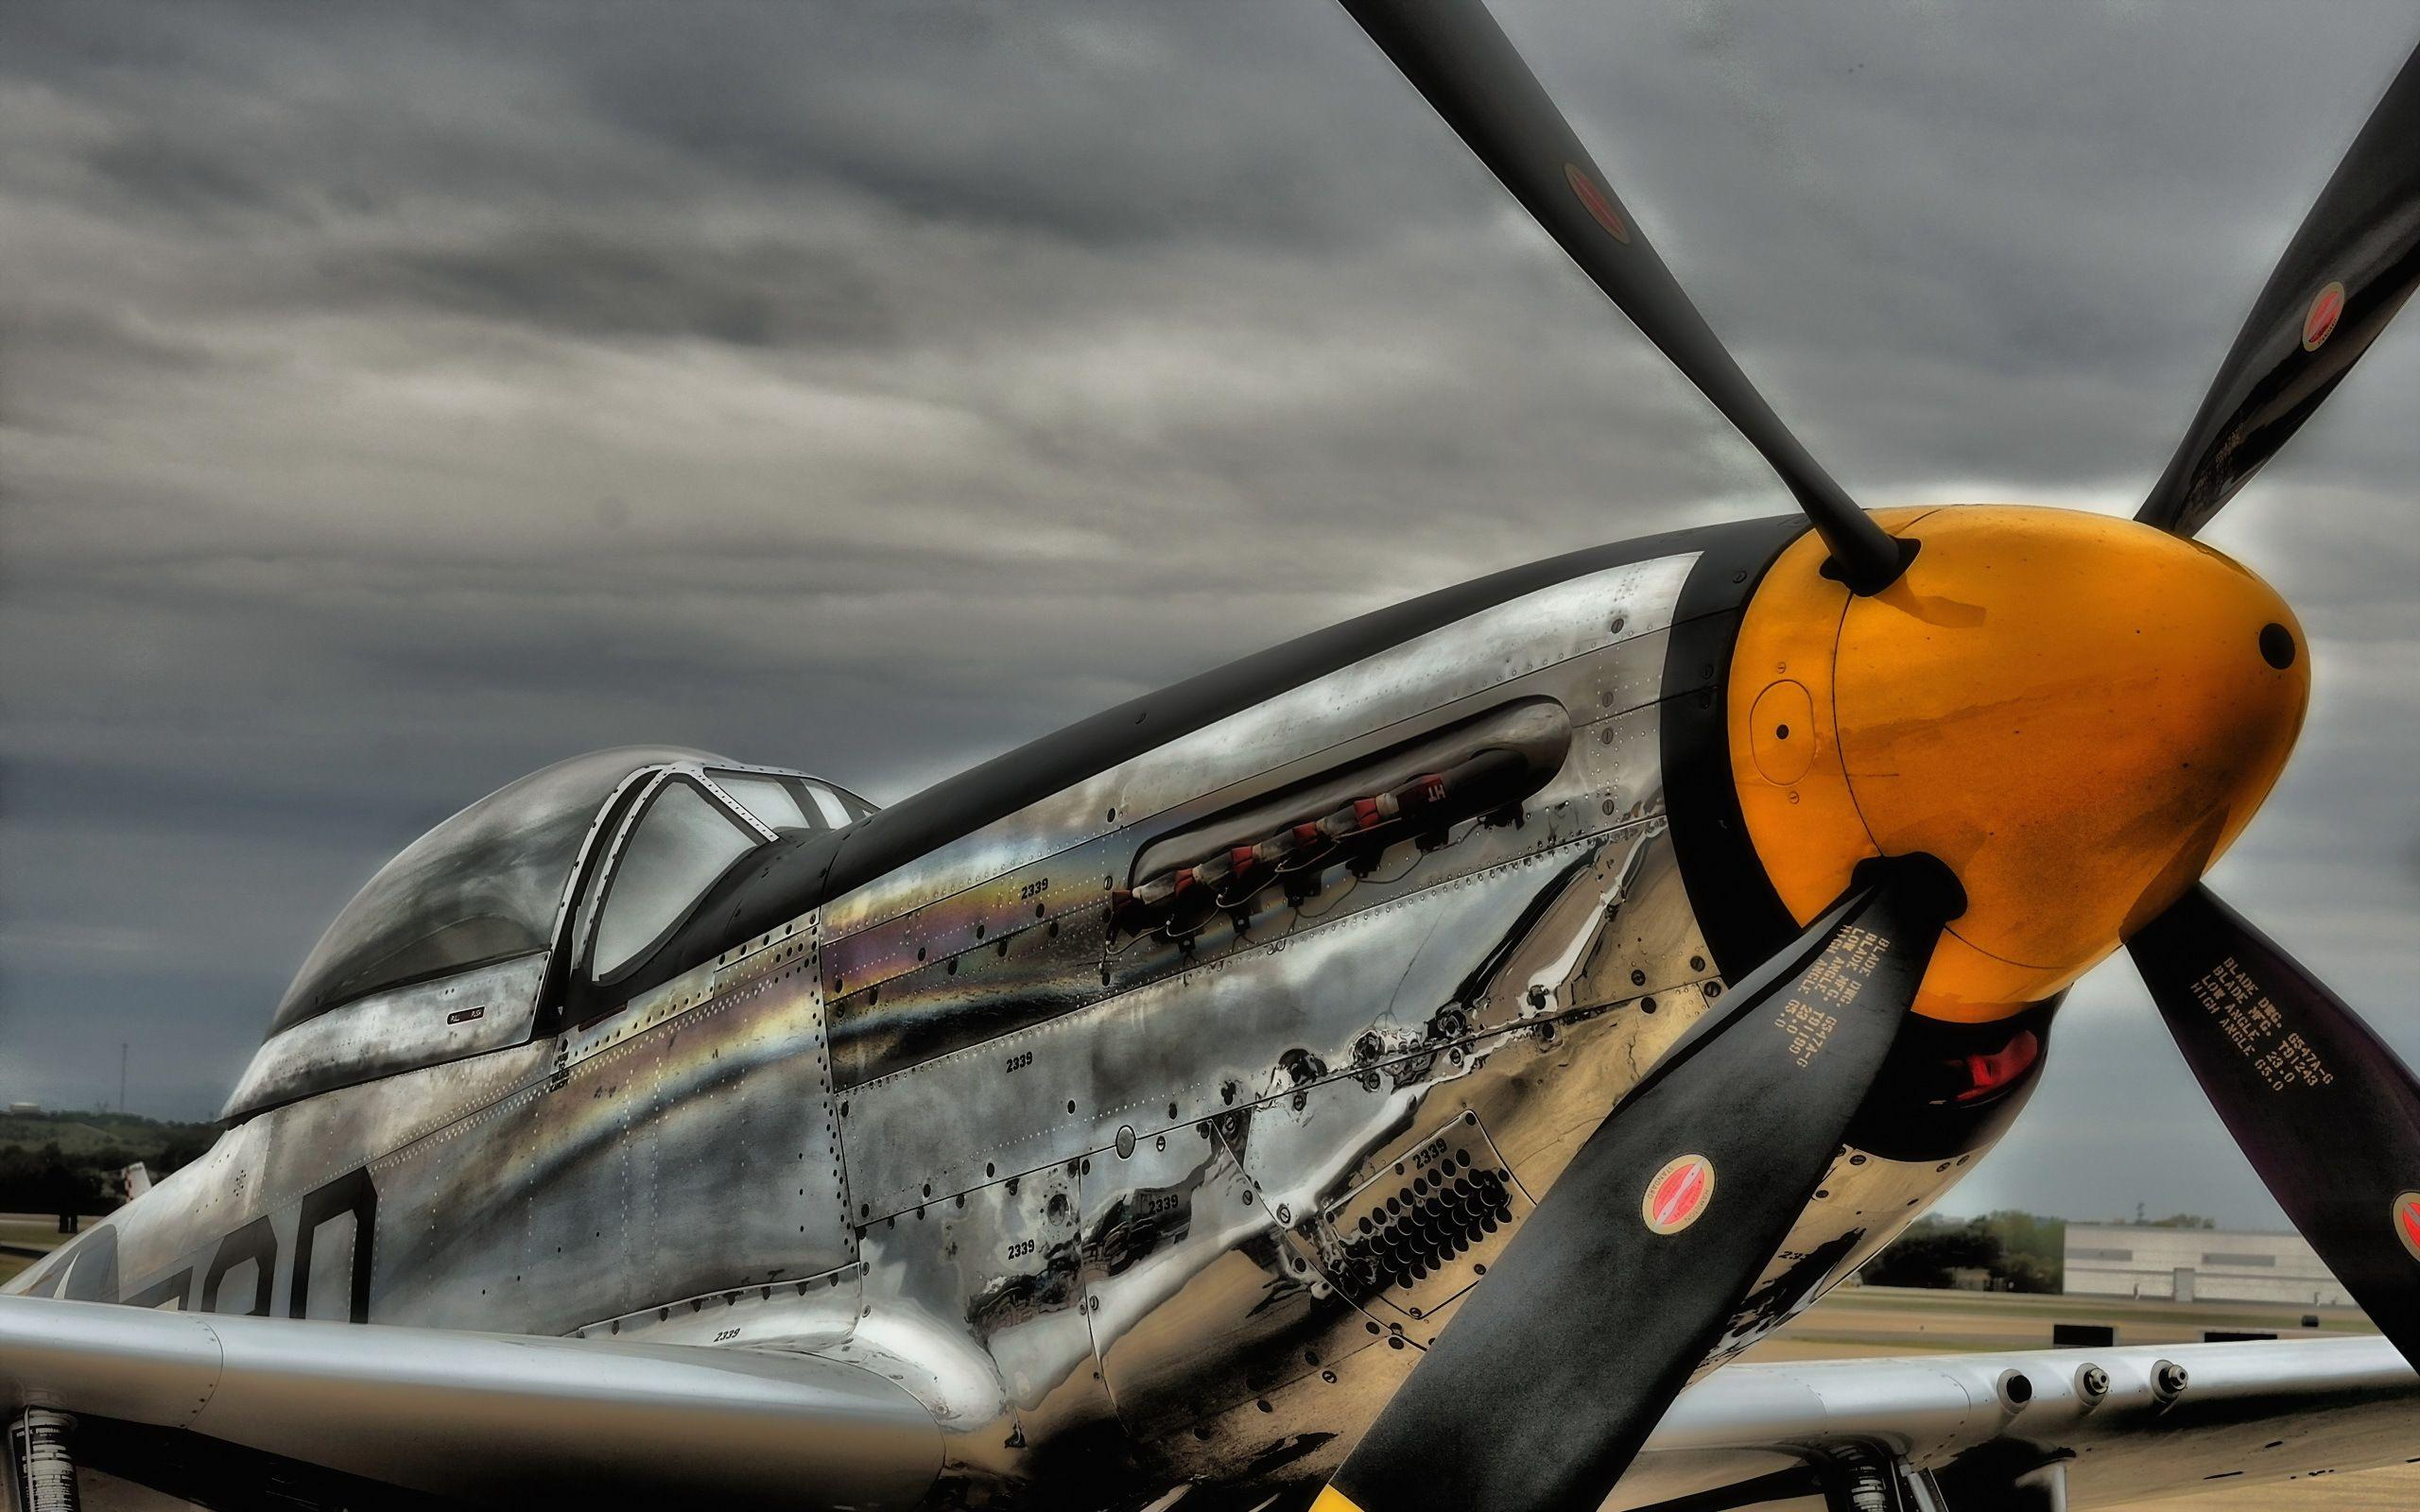 Wallpapers p51 mustang, airplane, aviation wallpapers aviation